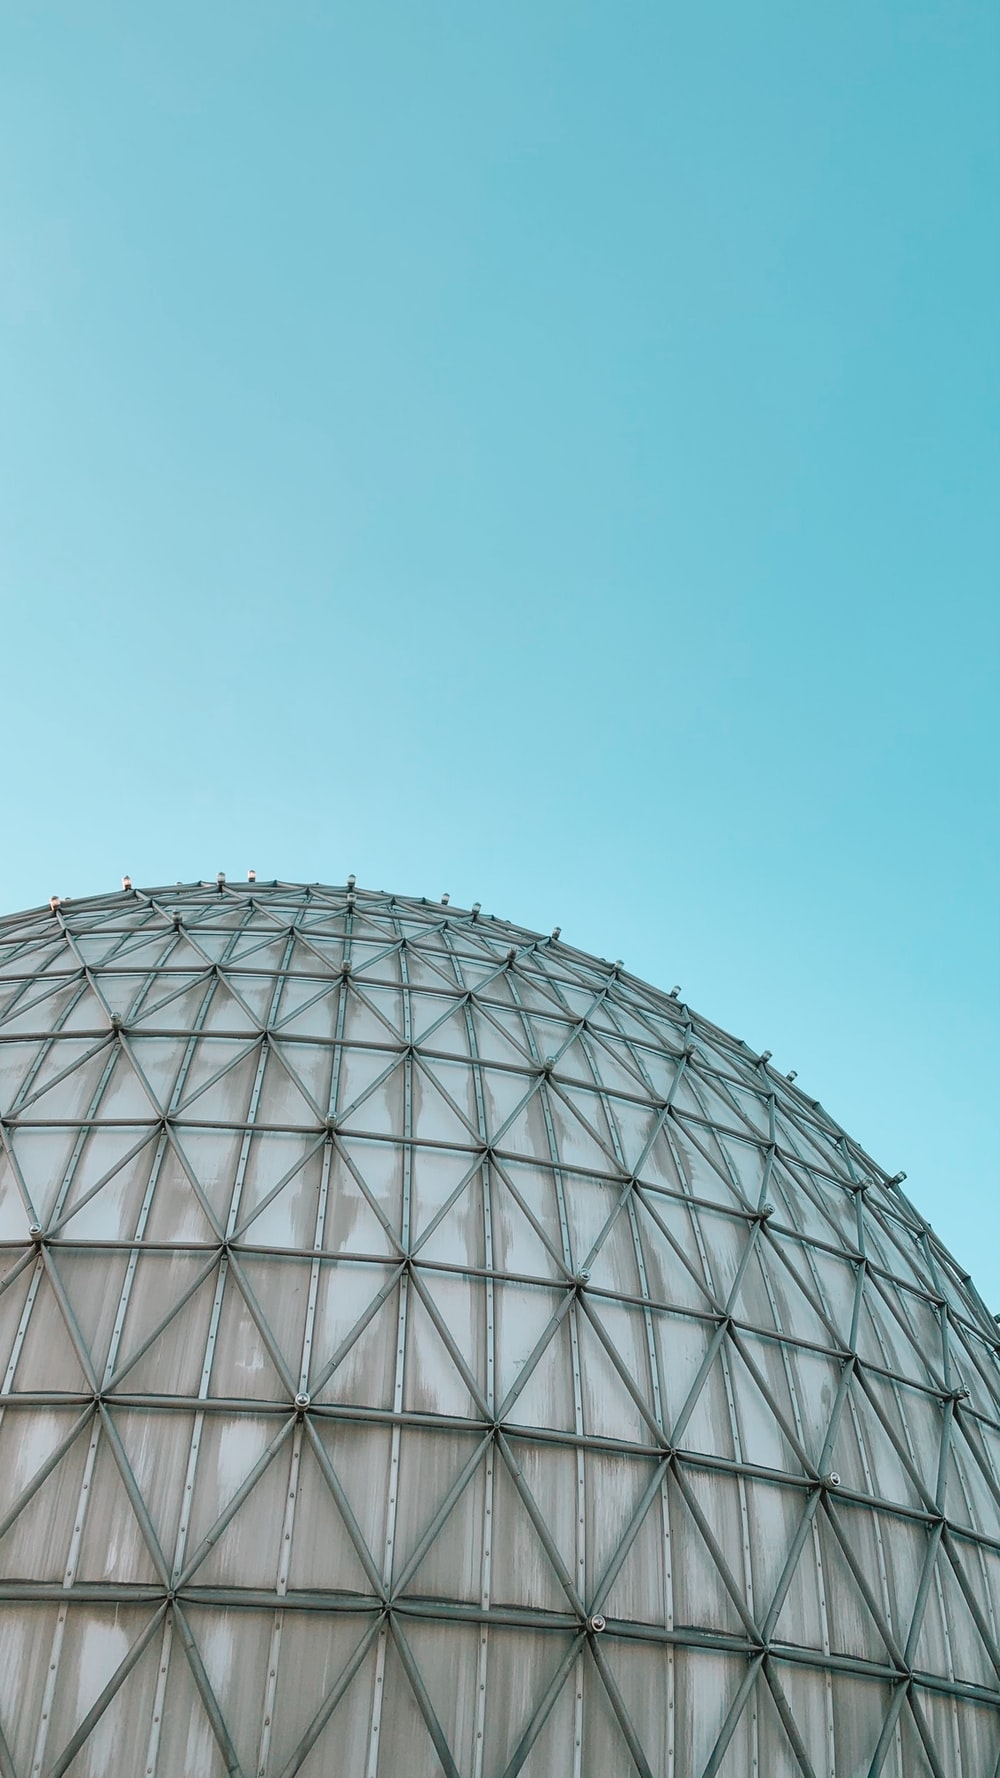 gray round building under blue sky during daytime